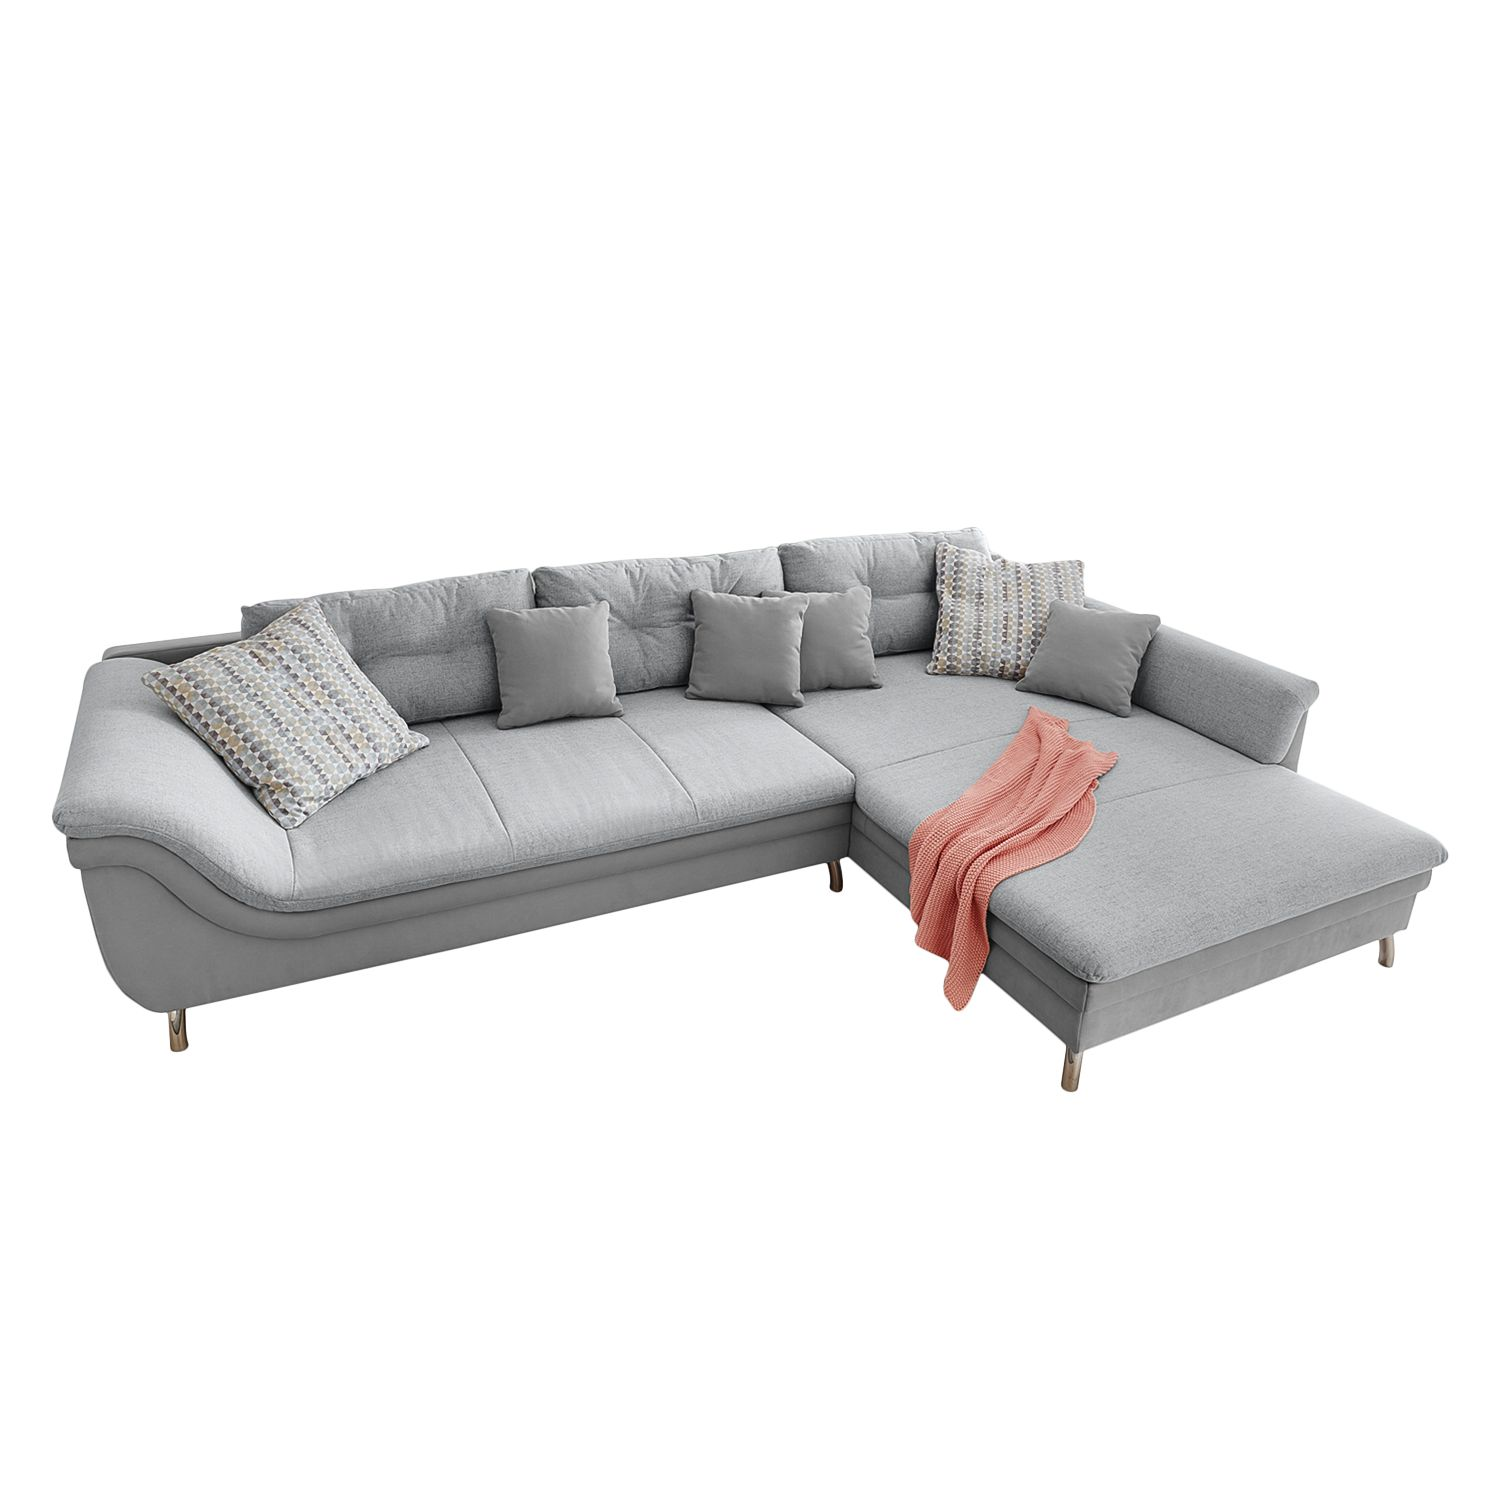 ecksofas kaufen excellent jvmoebel ecksofa ledersofa schlafsofa davos mit mglich grauwei x oder. Black Bedroom Furniture Sets. Home Design Ideas